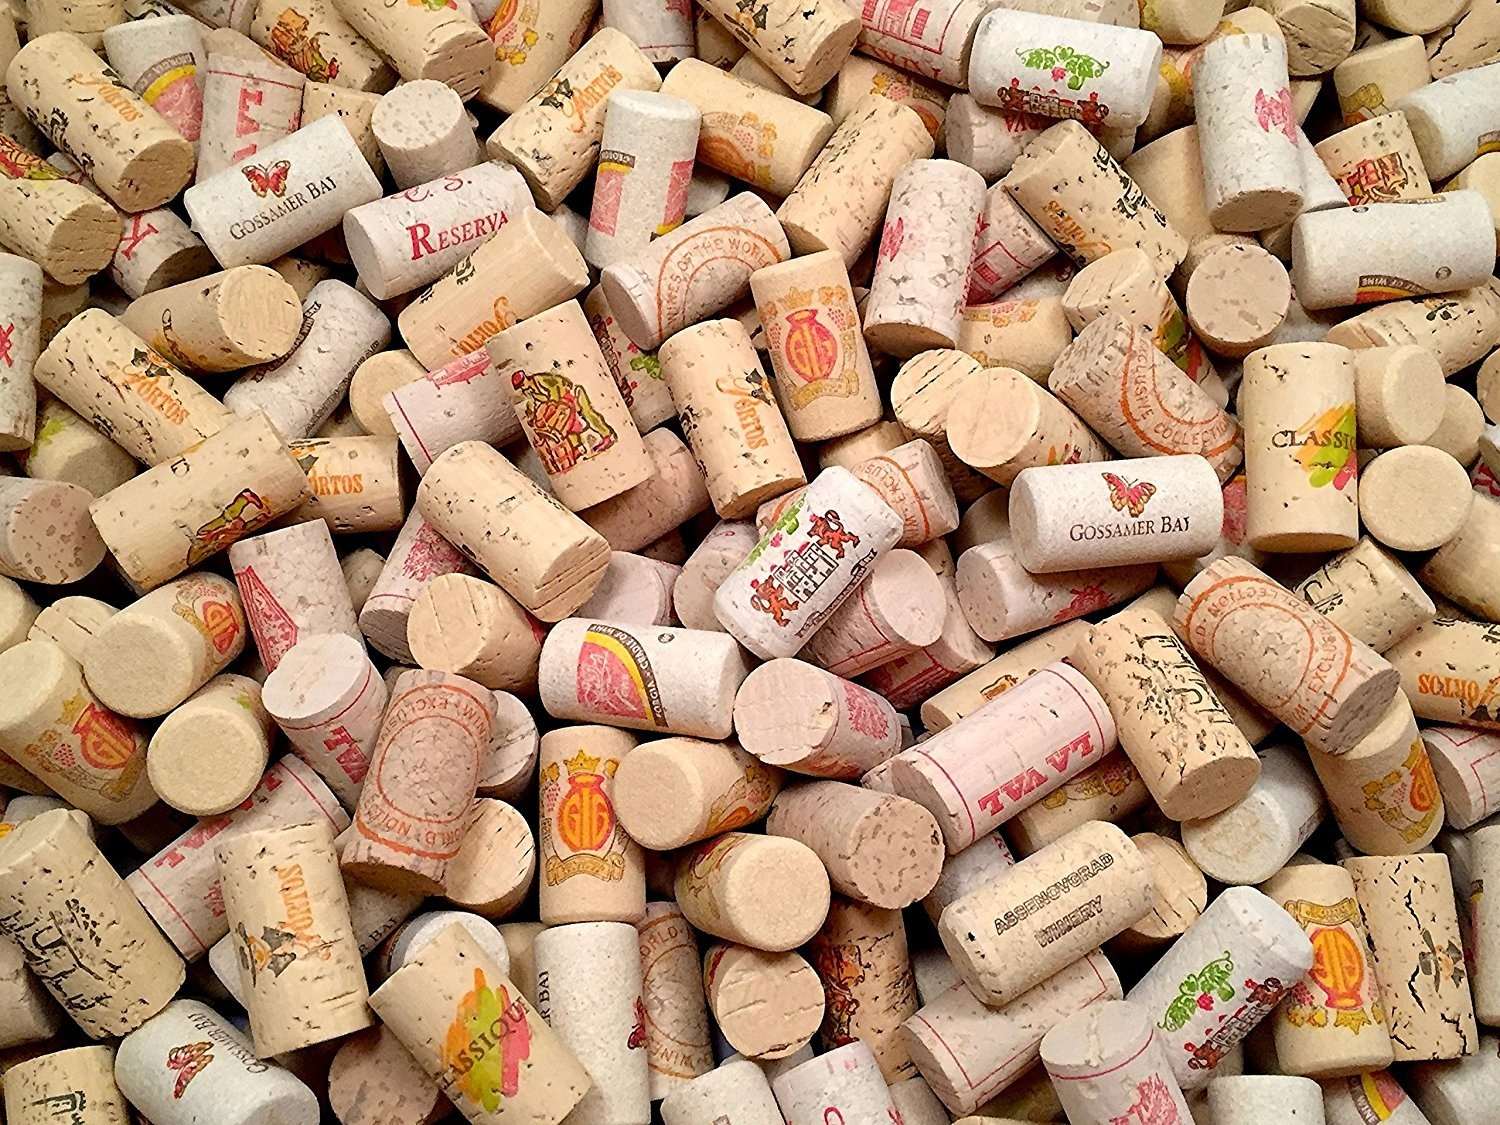 COLOR Wine Corks | Brand New, Authentic, All Natural | Printed, Winery-Marked, Craft Grade | Uncirculated, Uniform & Clean | Excellent for Crafting & Decor | Pack of 25/50/100 Premium Wine Cork (50) by Omni Trading Worldwide (Image #3)